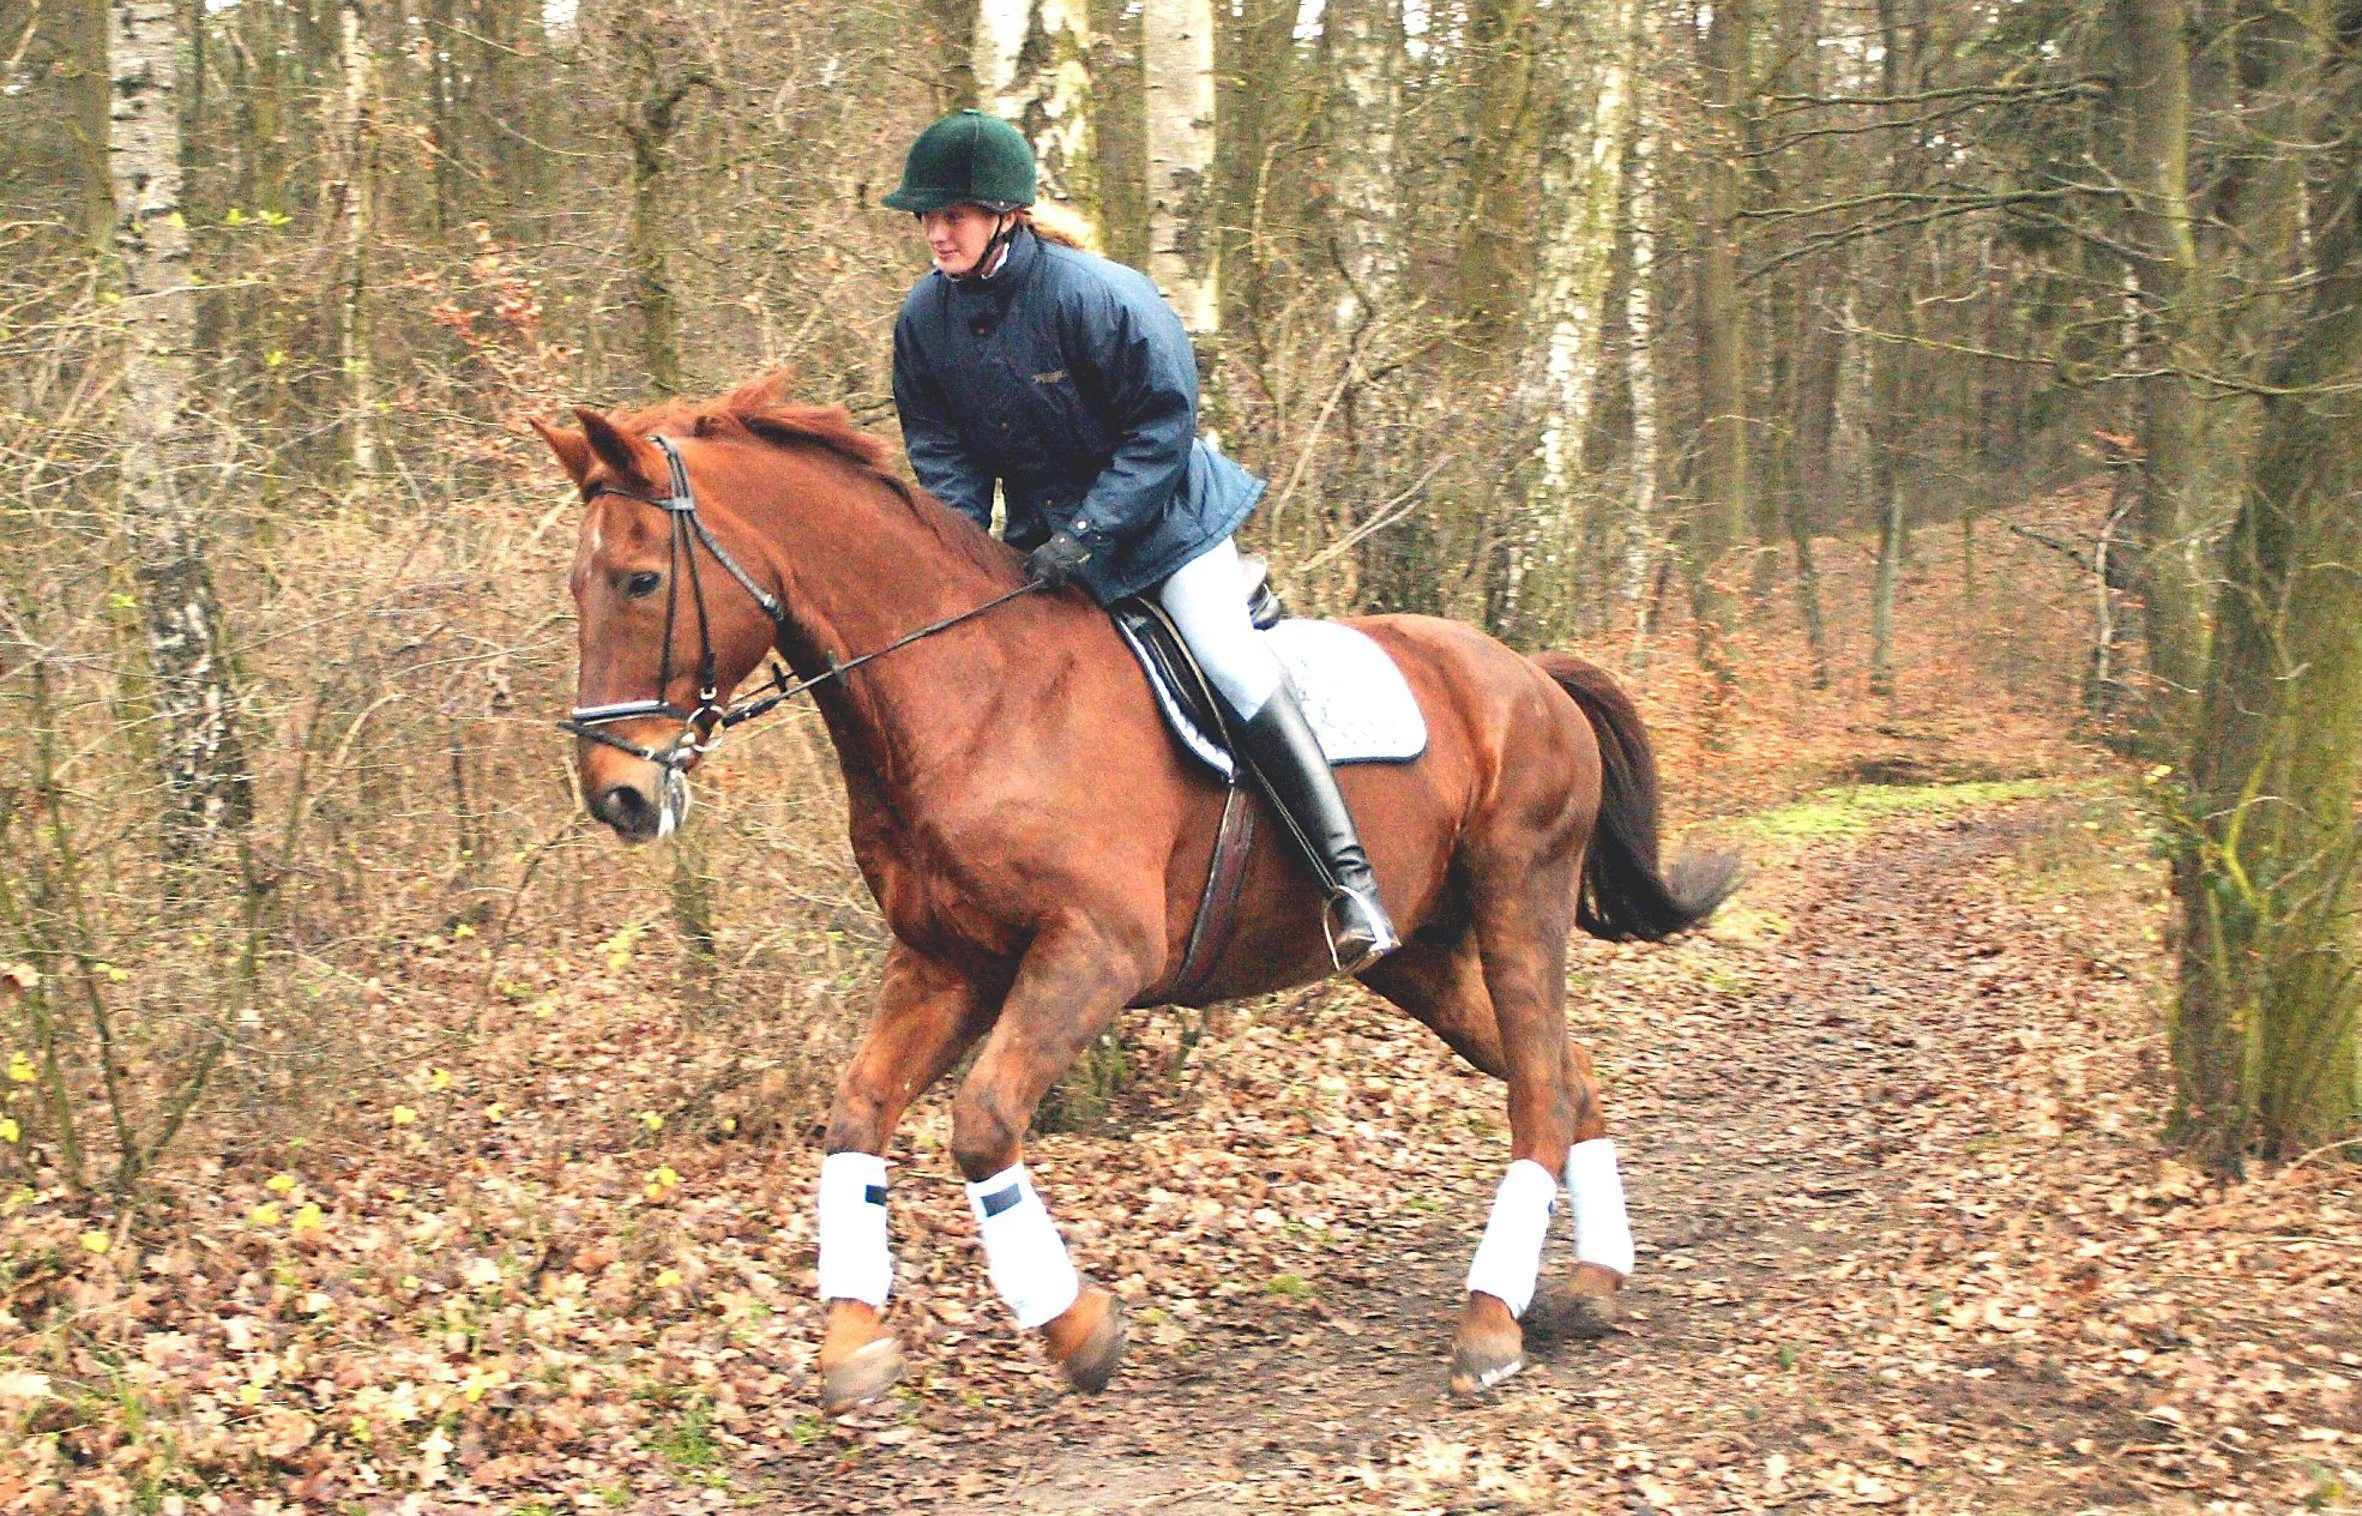 Rider galloping through forest on horse.